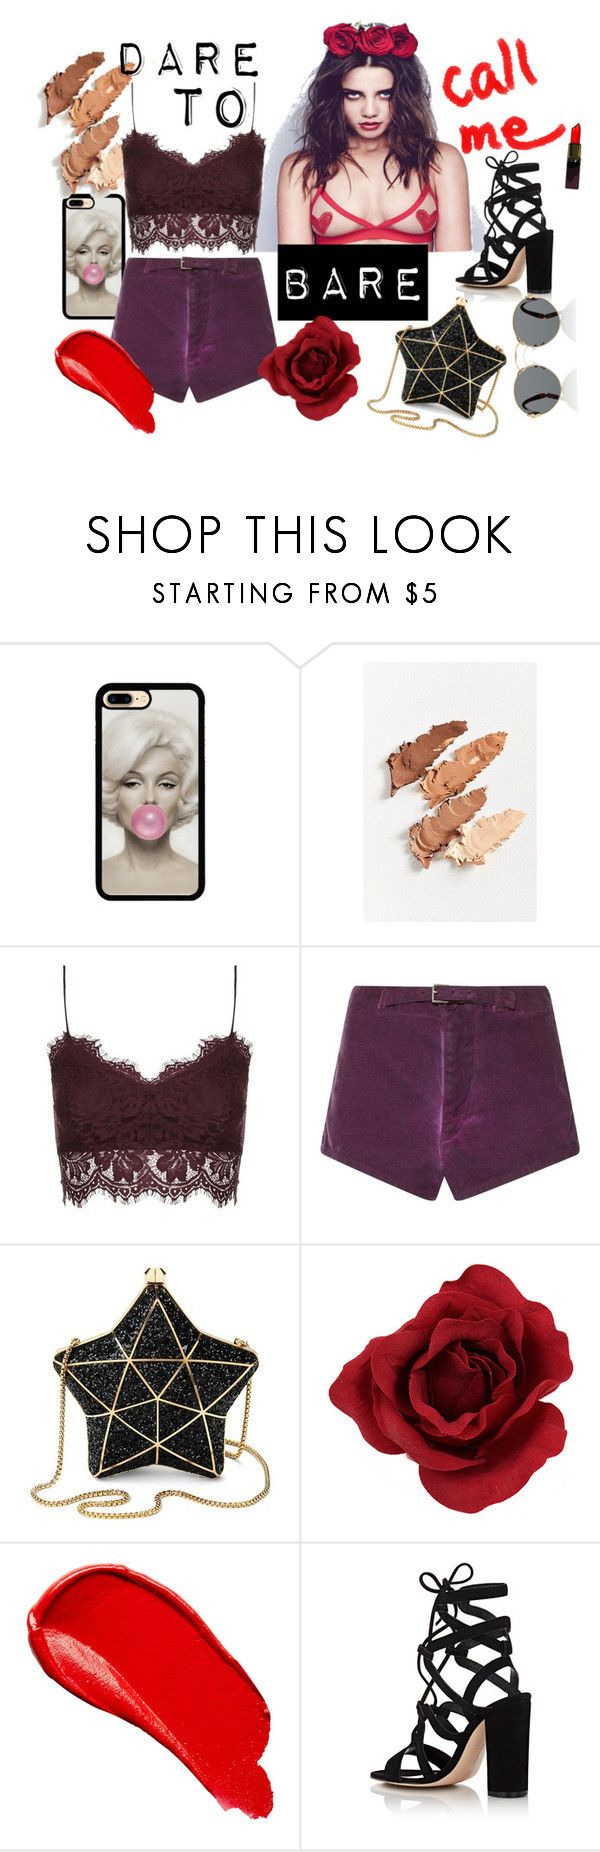 """BARE ESSENTIALS"" by mariewagas ❤ liked on Polyvore featuring MILK MAKEUP, Topshop, Etro, Aspinal of London, Burberry, Gianvito Rossi and Prada"